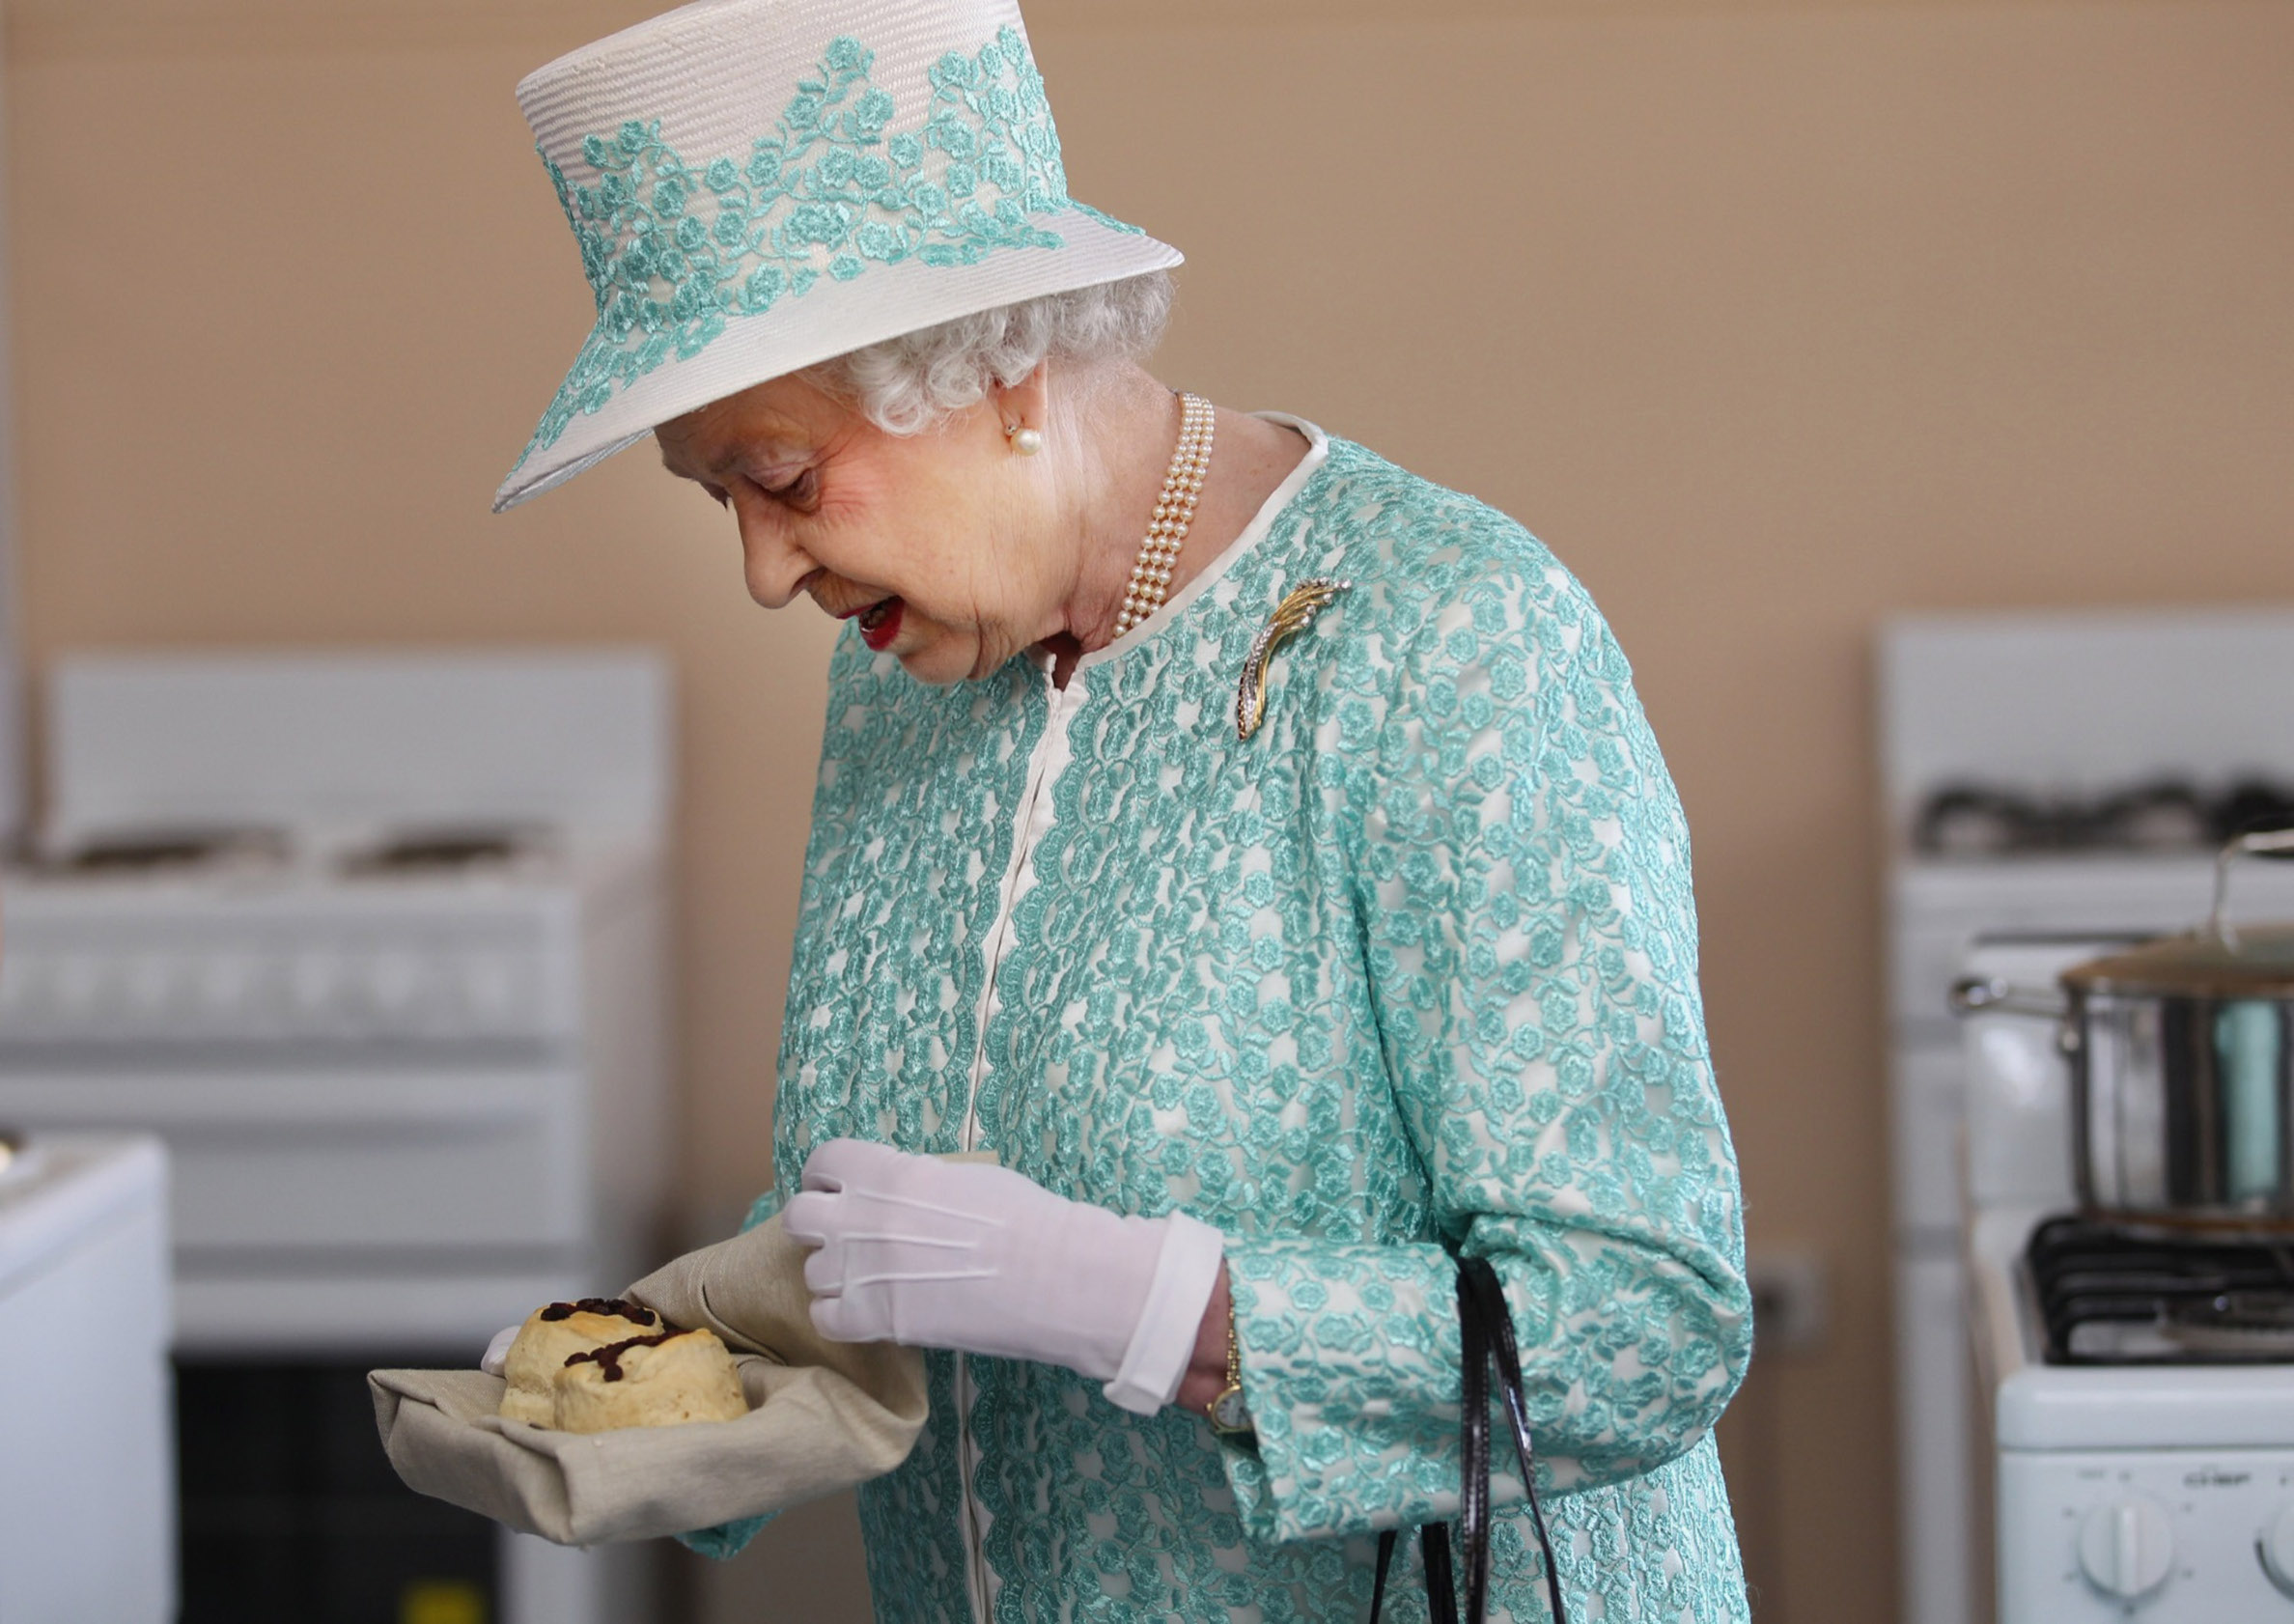 PERTH, AUSTRALIA - OCTOBER 27:  Queen Elizabeth II receives scones from the Clontarf kitchen during her visit to Clontarf Aboriginal college on October 27, 2011 in Perth, Australia. The Queen and Duke of Edinburgh are on a 10-day visit to Australia and will travel to Canberra, Brisbane, and Melbourne before heading to Perth for the Commonwealth Heads of Government meeting. This is the Queen's 16th official visit to Australia. (Photo by Sharon Smith-Pool/Getty Images)